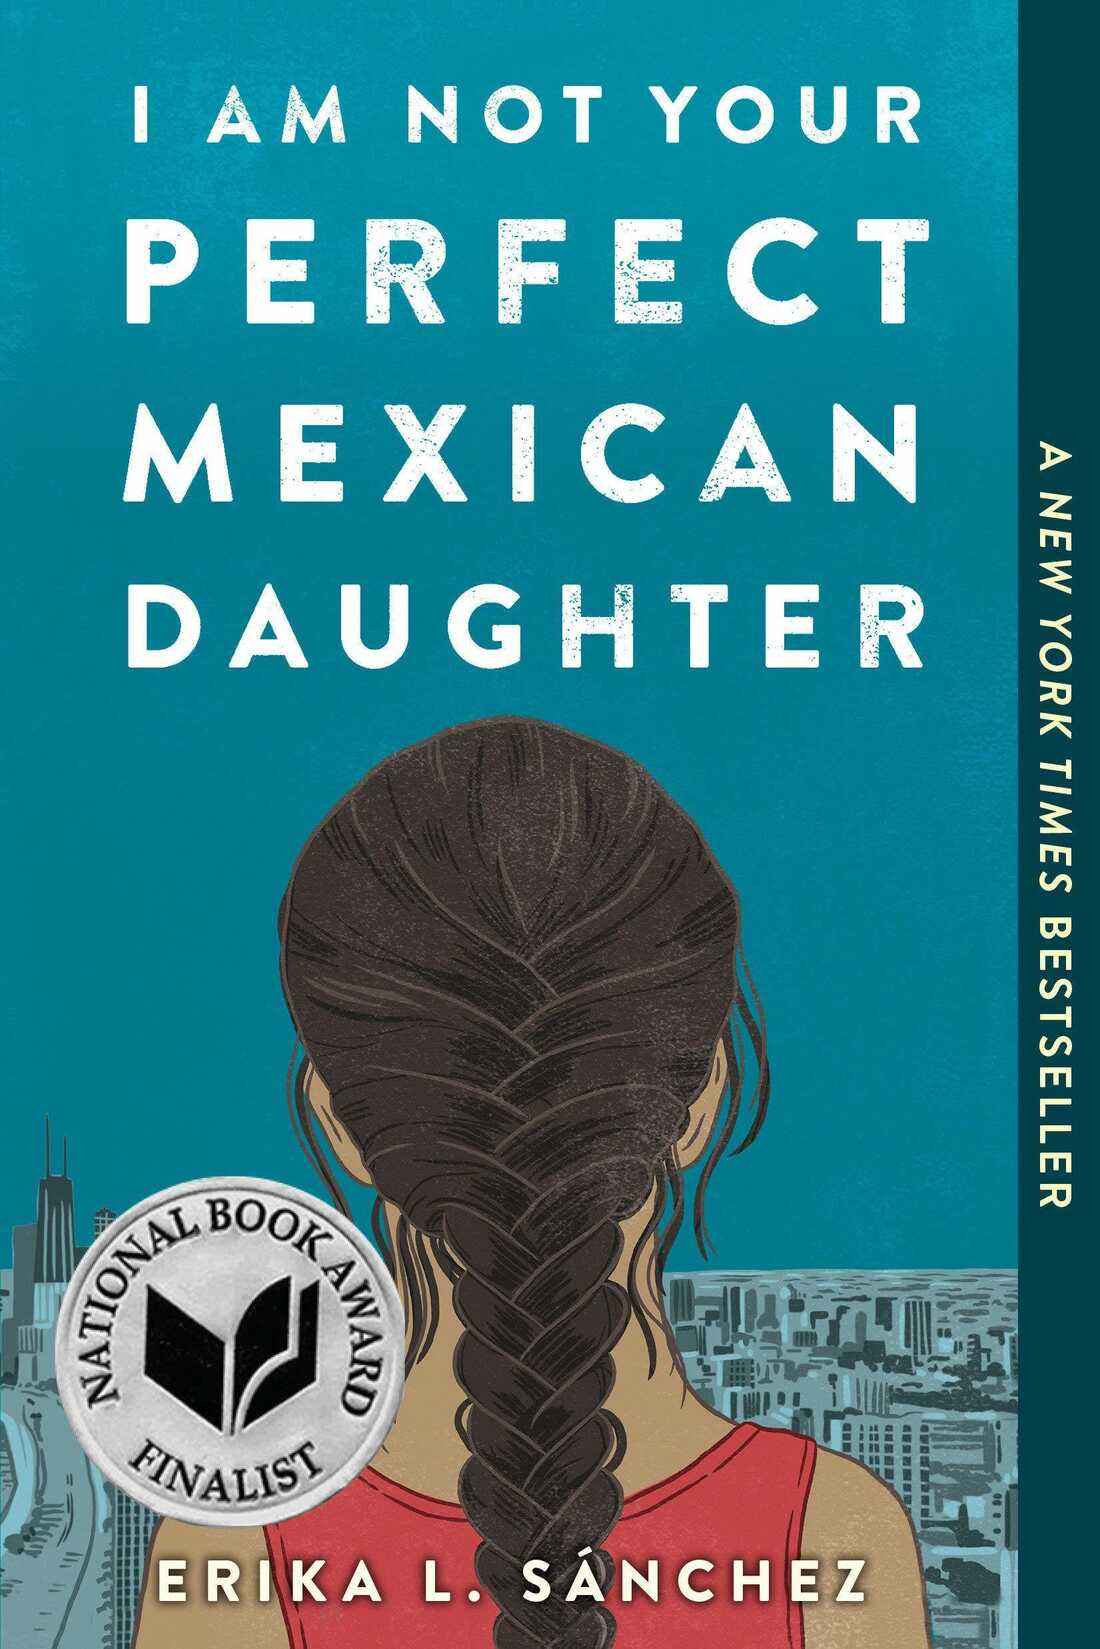 I Am Not Your Perfect Mexican Daughter, by Erika L. Sánchez